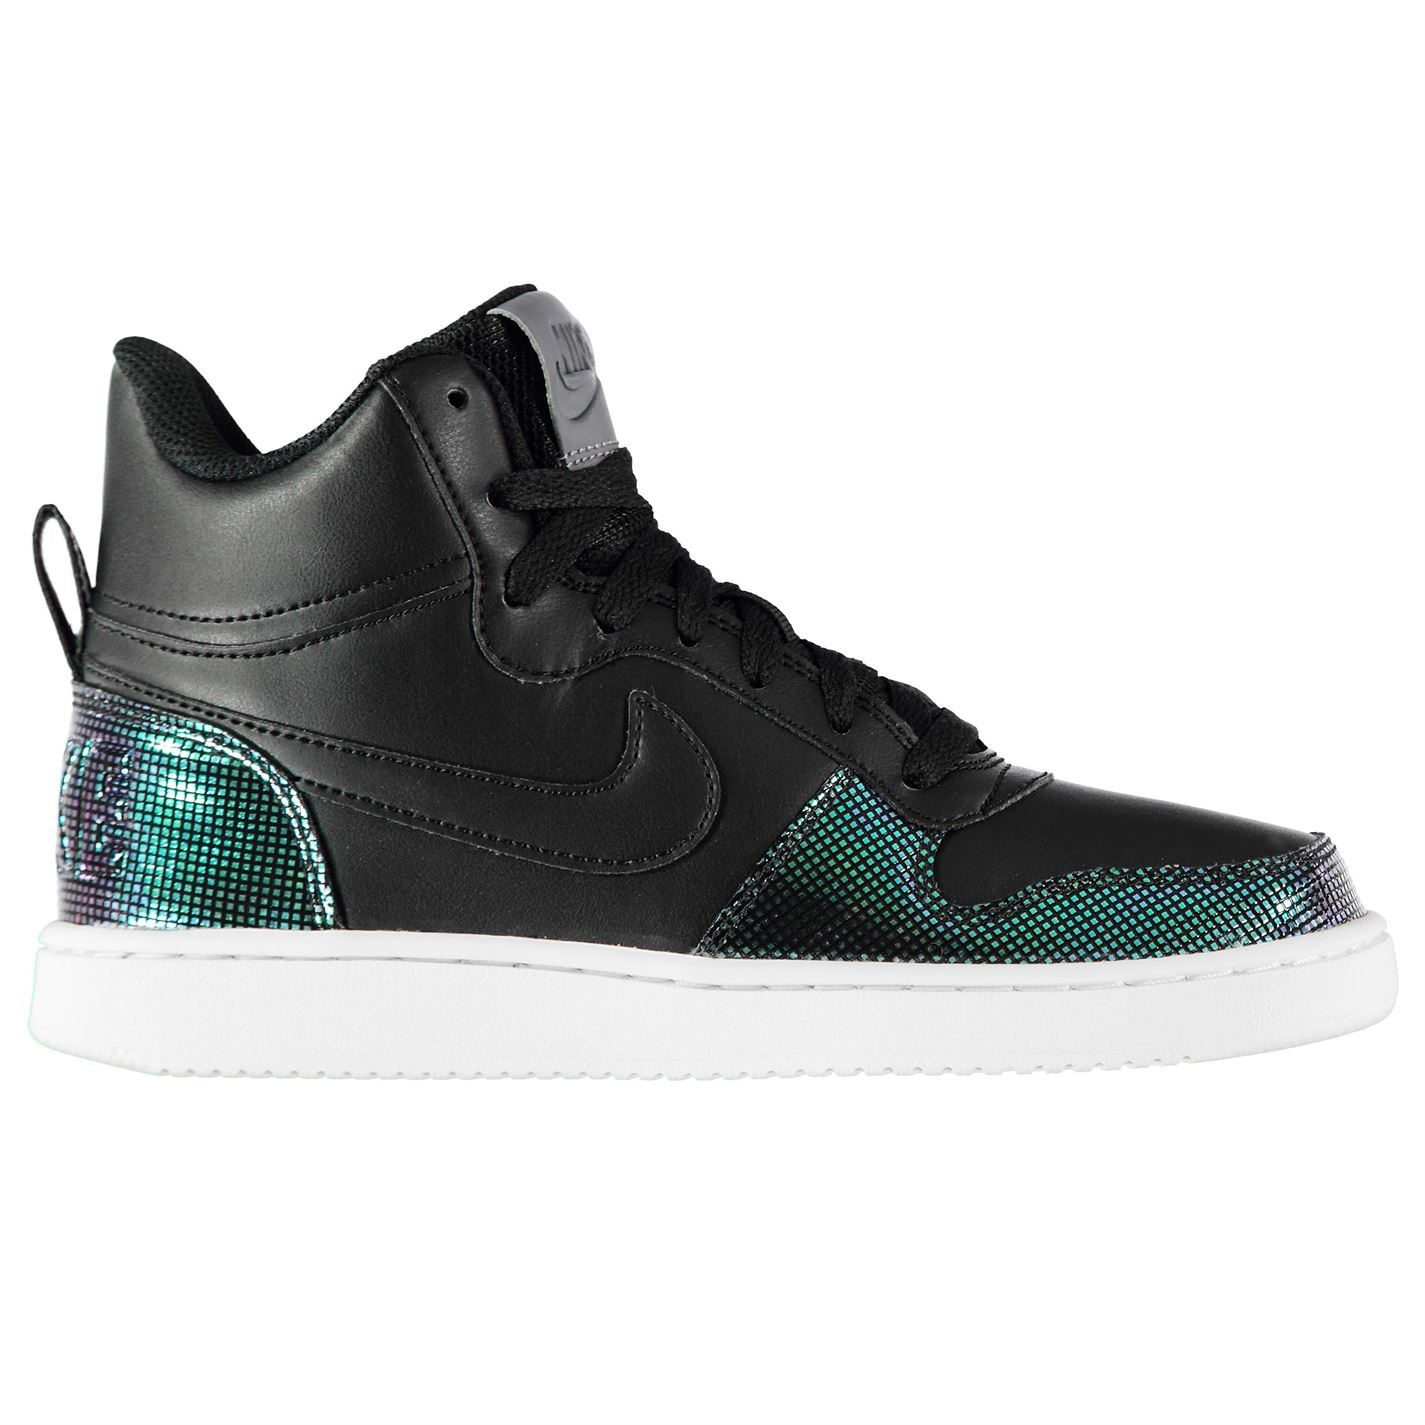 a50858e26902be ... Nike Court Borough Mid SE Trainers Womens Black Sports Trainers Sneakers  ...